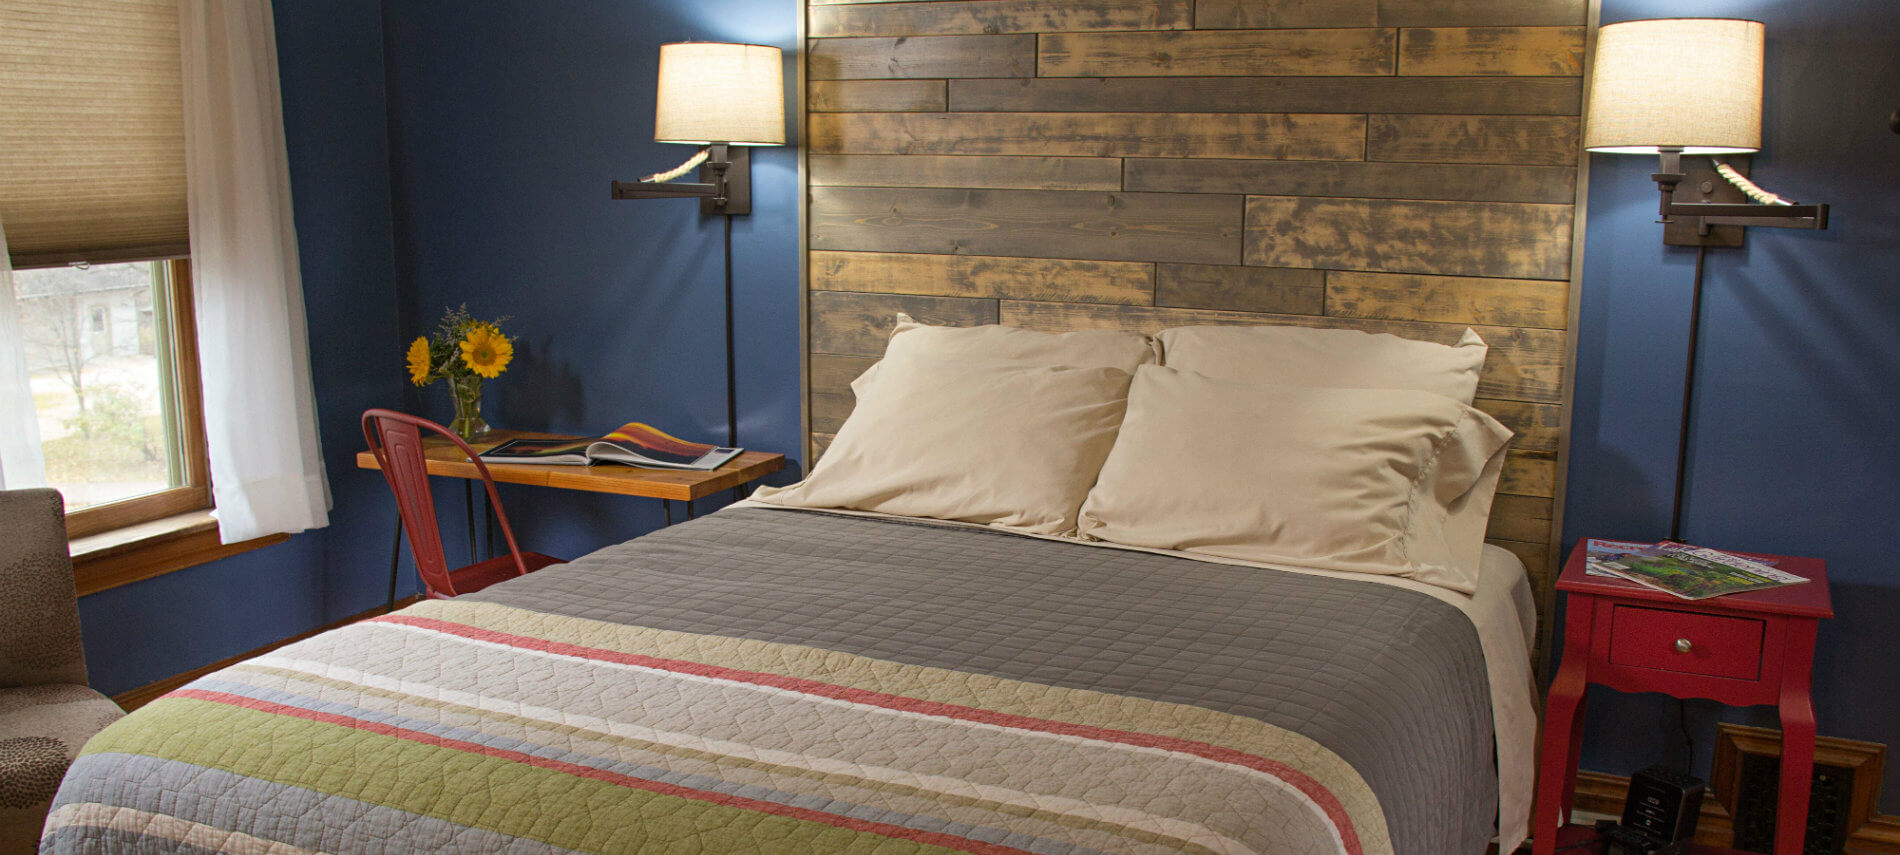 Blue guest room, bed with striped quilt and shiplap headboard, two nightstands and reading lights, and window